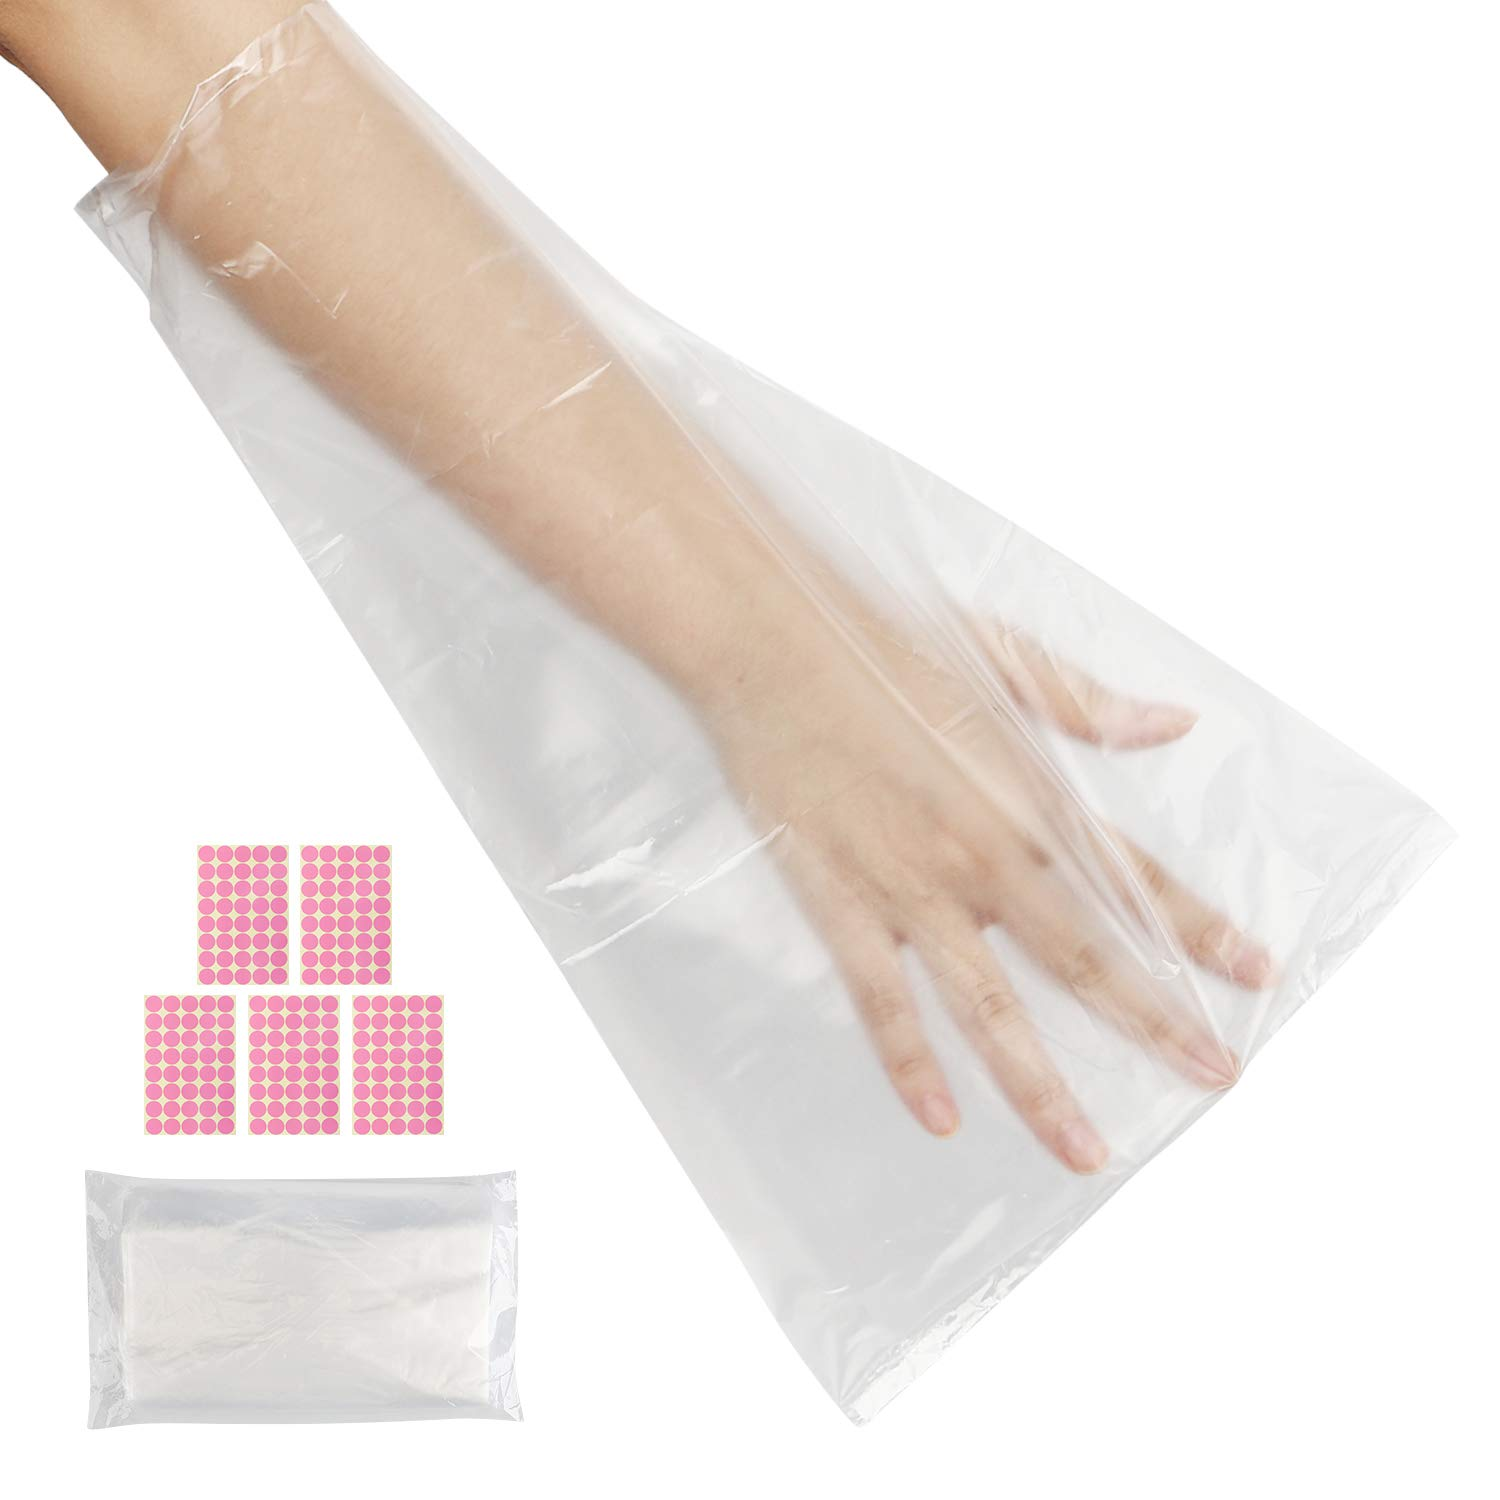 100 Counts Paraffin Wax Bags for Hands & Feet, Segbeauty Plastic Paraffin Wax Liners, Disposable Therapy Wax Refill Sock Glove Paraffin Bath Mitt Cover for Therabath Wax Treatment Paraffin Wax Machine